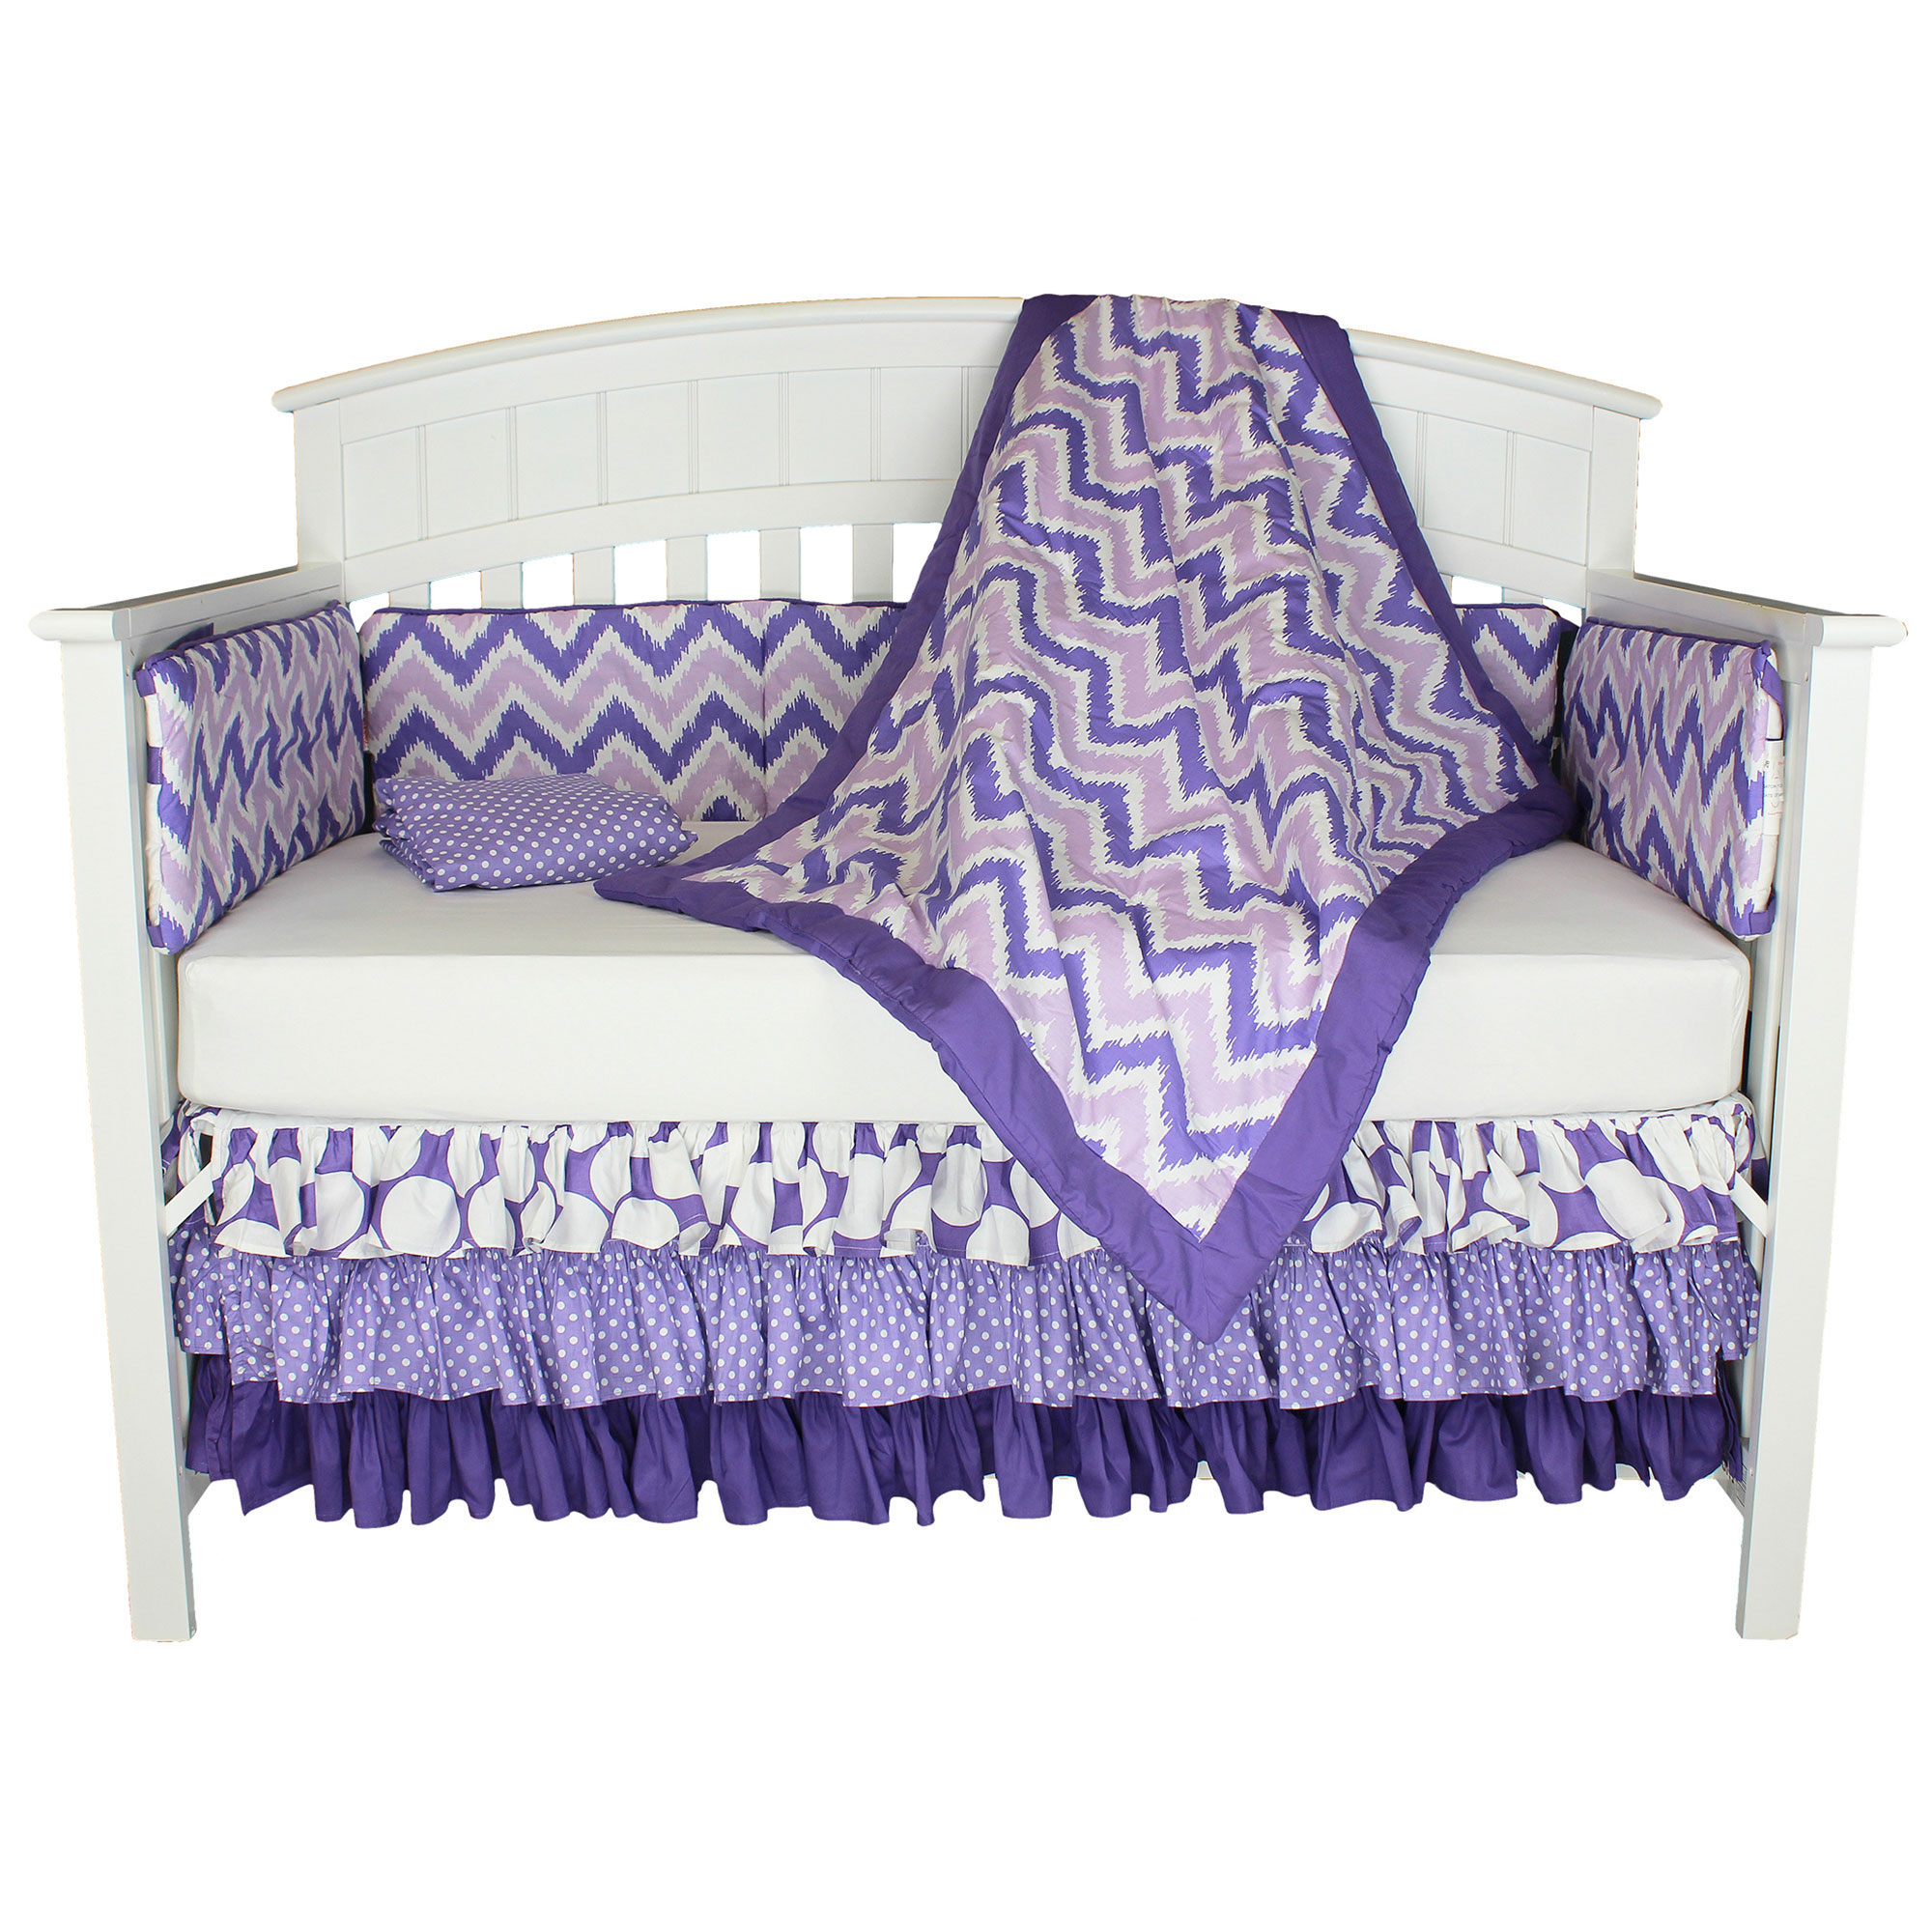 Bacati Crib Bedding Set - Purple and Lavender Polka Dots and Zig Zag - 100% Cotton 5 Piece Baby Girl Bedding Collection with Bumper